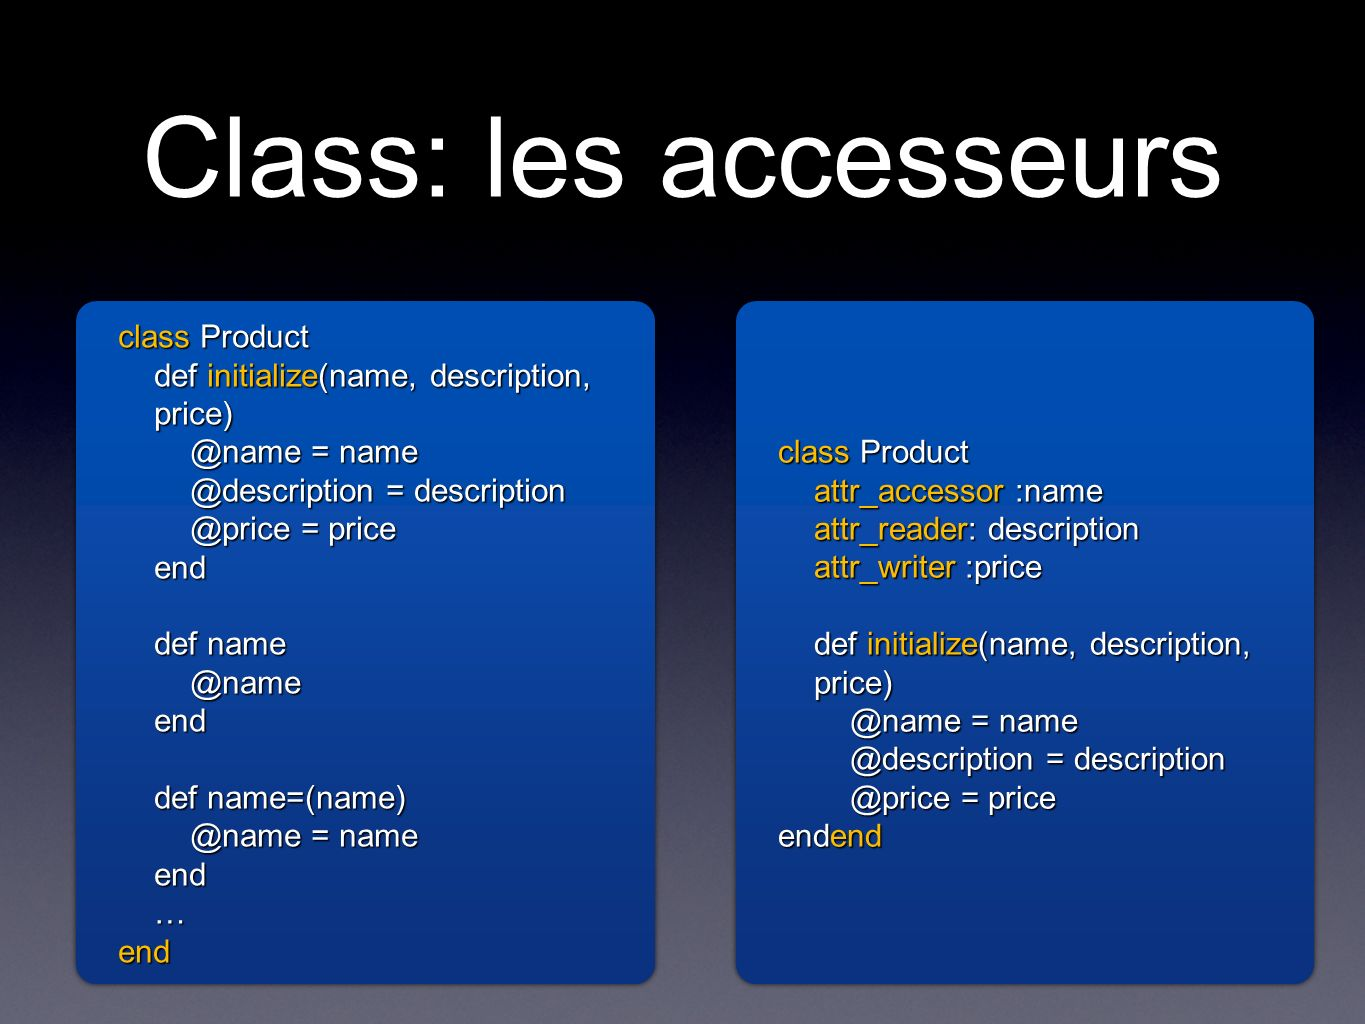 Class: les accesseurs class Product def initialize(name, description, = = = price end def def = name end…end class Product def initialize(name, description, = = = price end def end def = name end … end class Product attr_accessor :name attr_reader: description attr_writer :price def initialize(name, description, = = = price endend class Product attr_accessor :name attr_reader: description attr_writer :price def initialize(name, description, = = = price endend